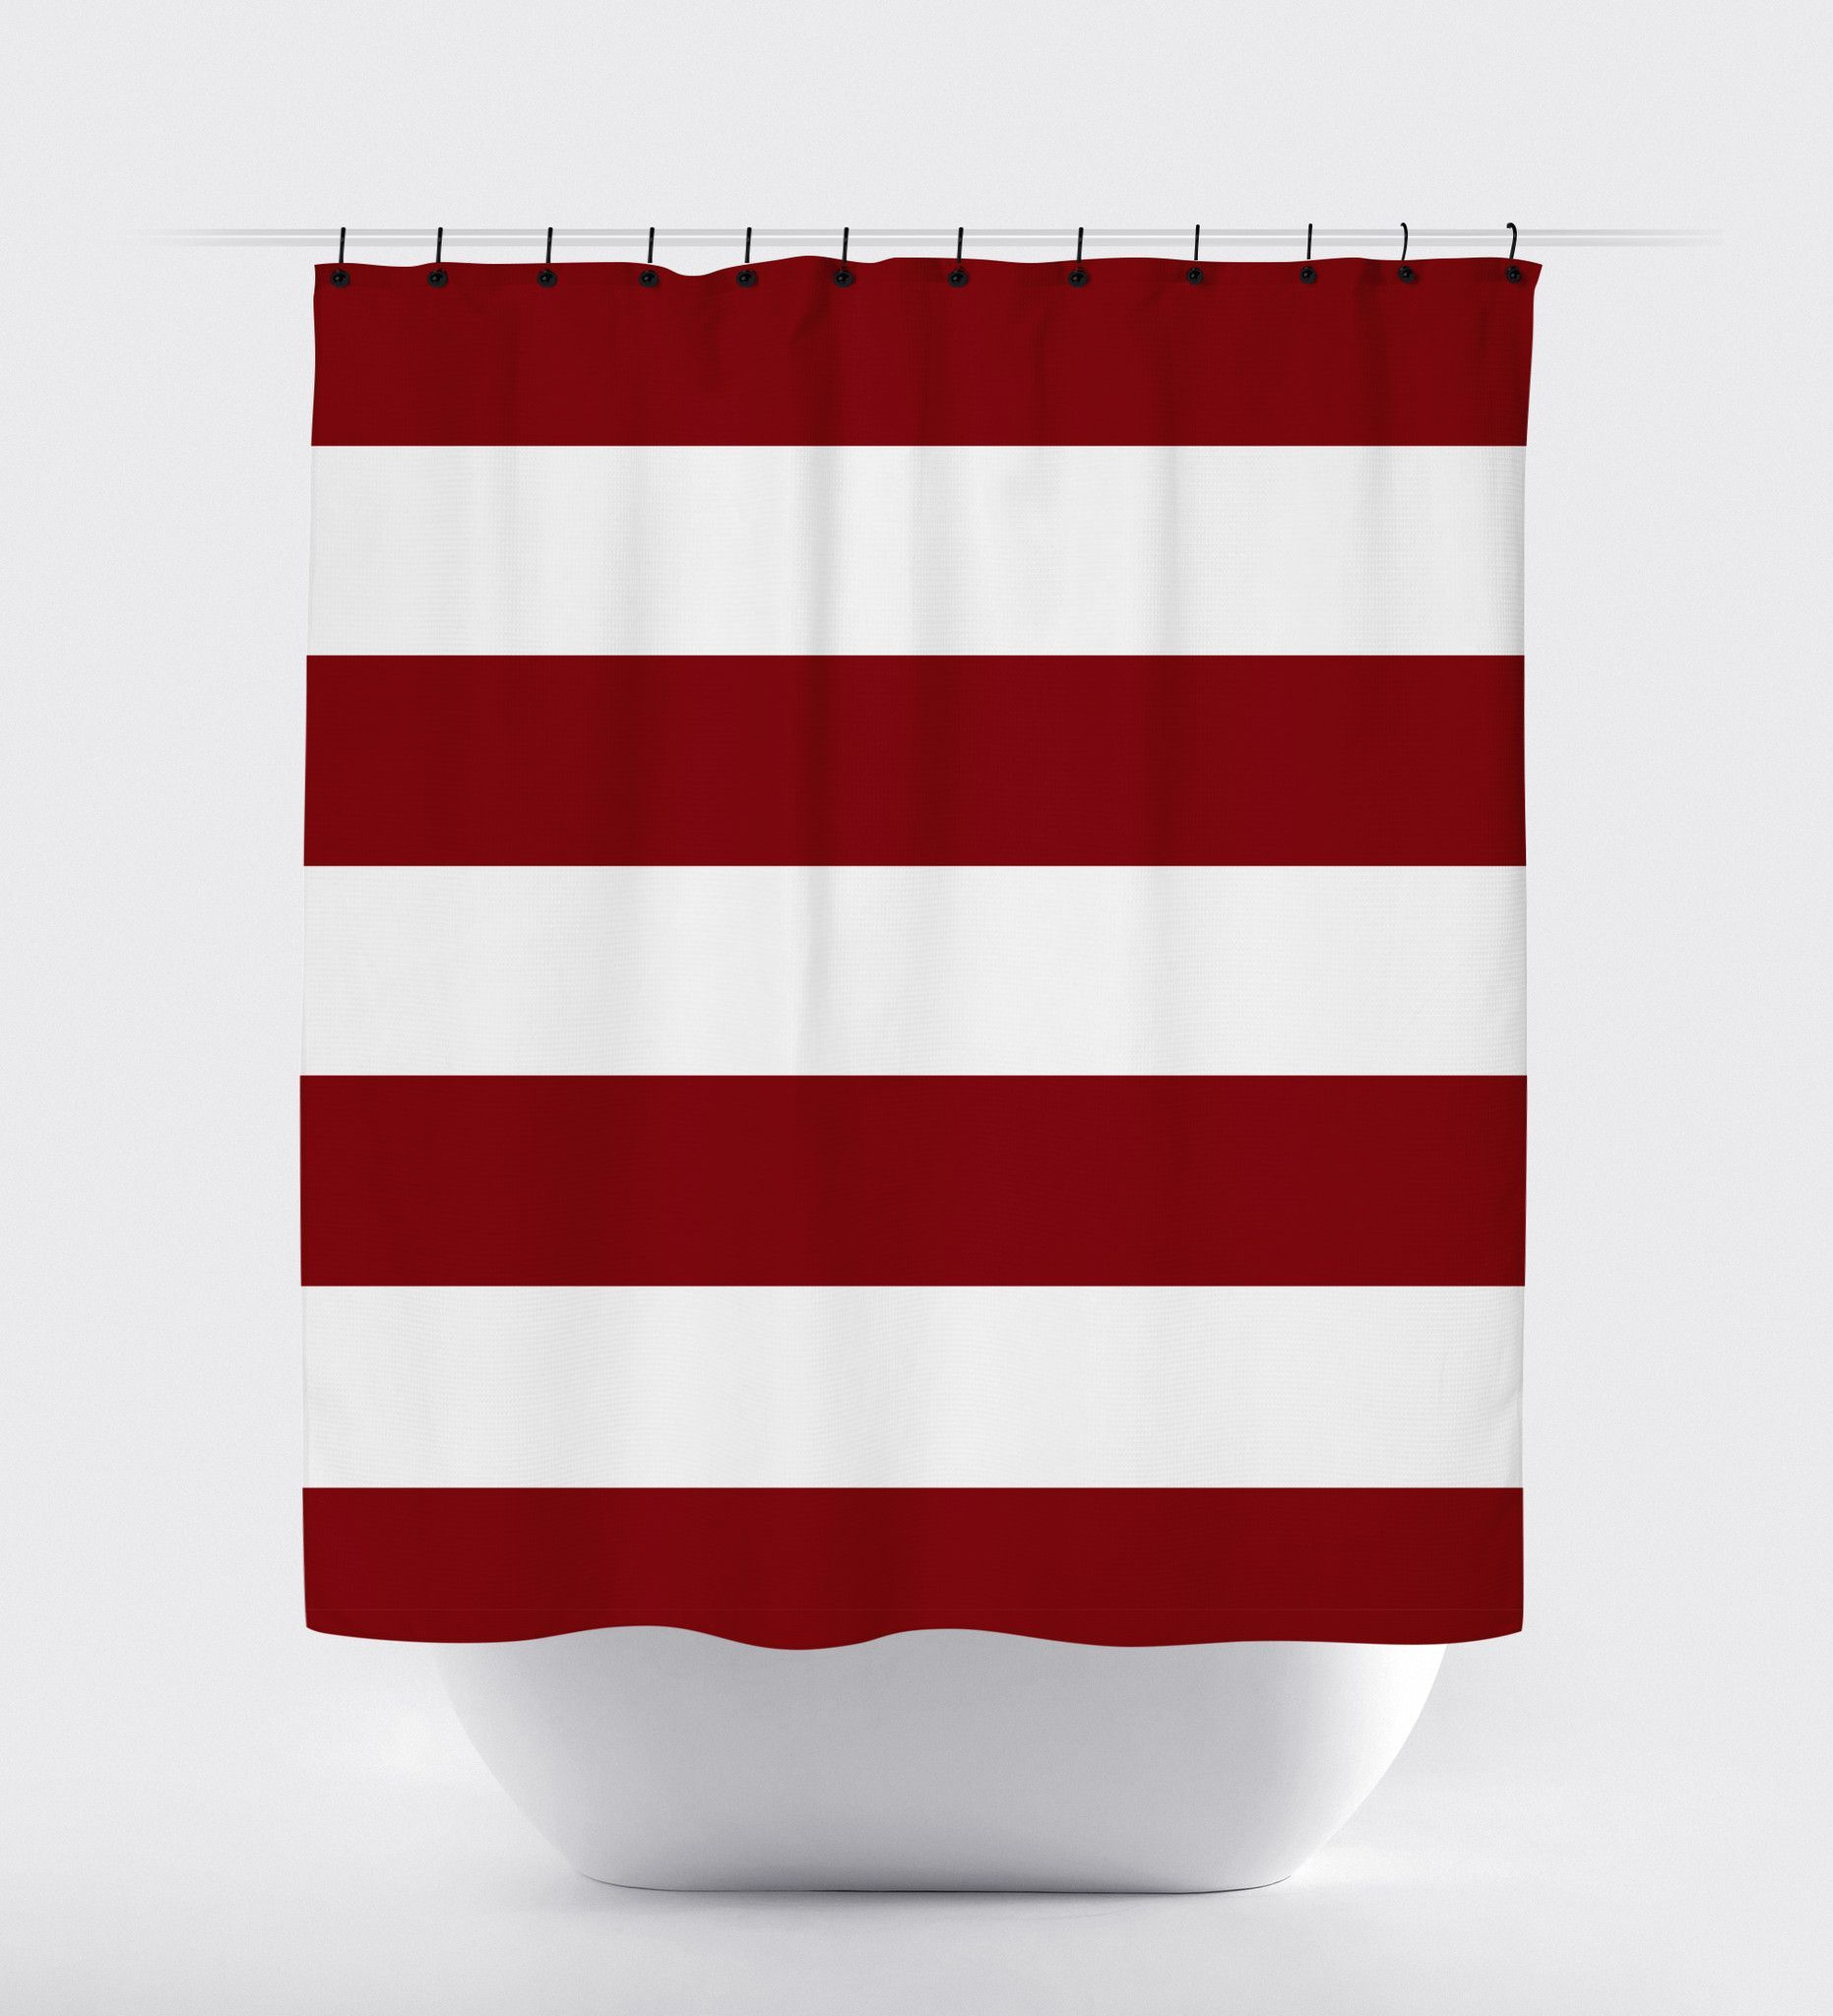 Red White Striped Shower Curtain Bathroom Rules Boy Curtains